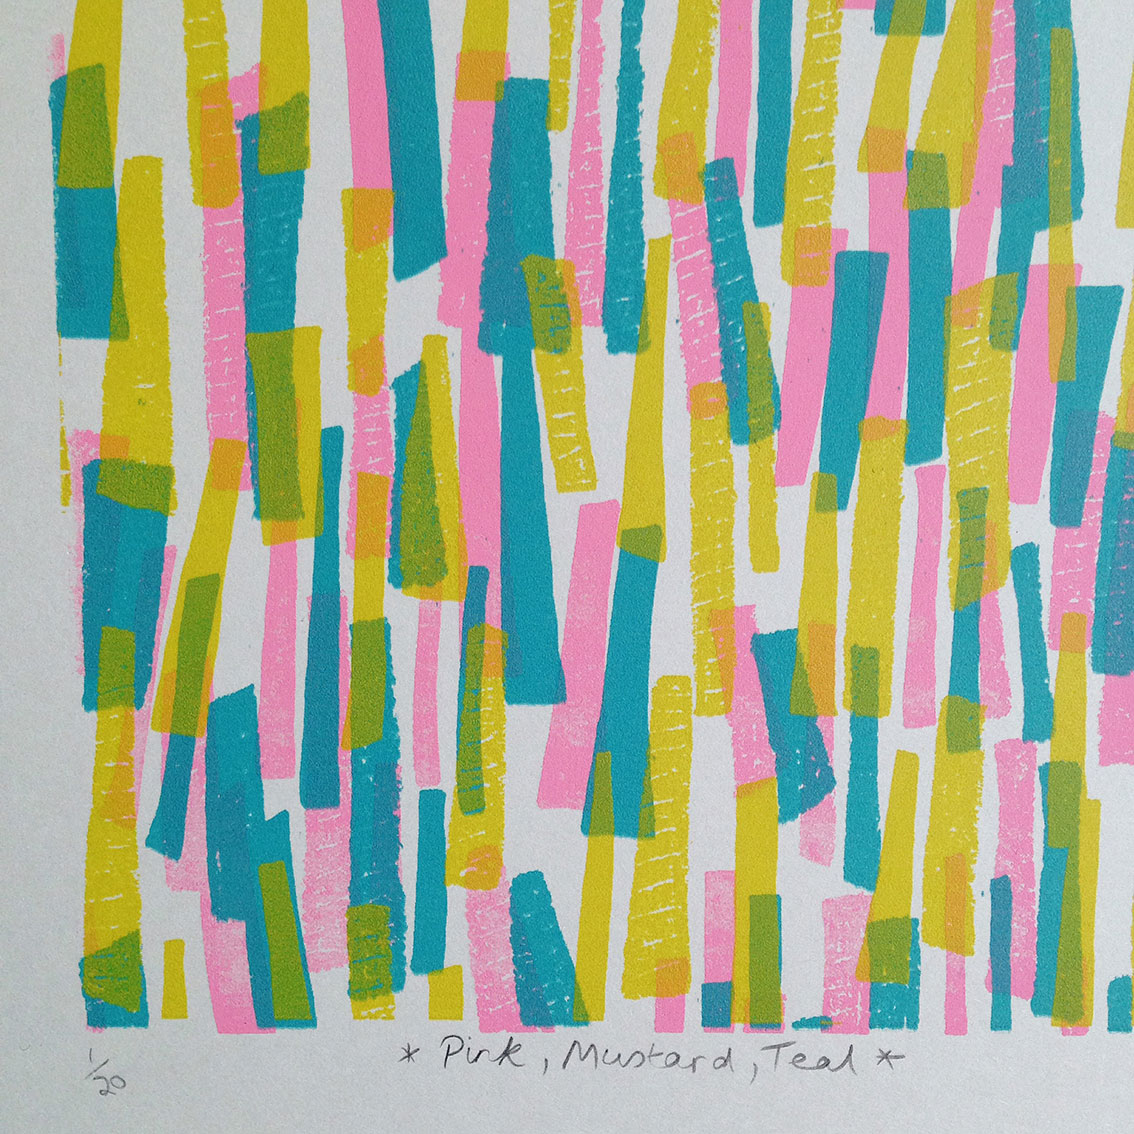 Pink, Mustard, Teal  screenprint  13 x 13cm  £25 (unframed)  £5 to be donated to   equalitynow.org .